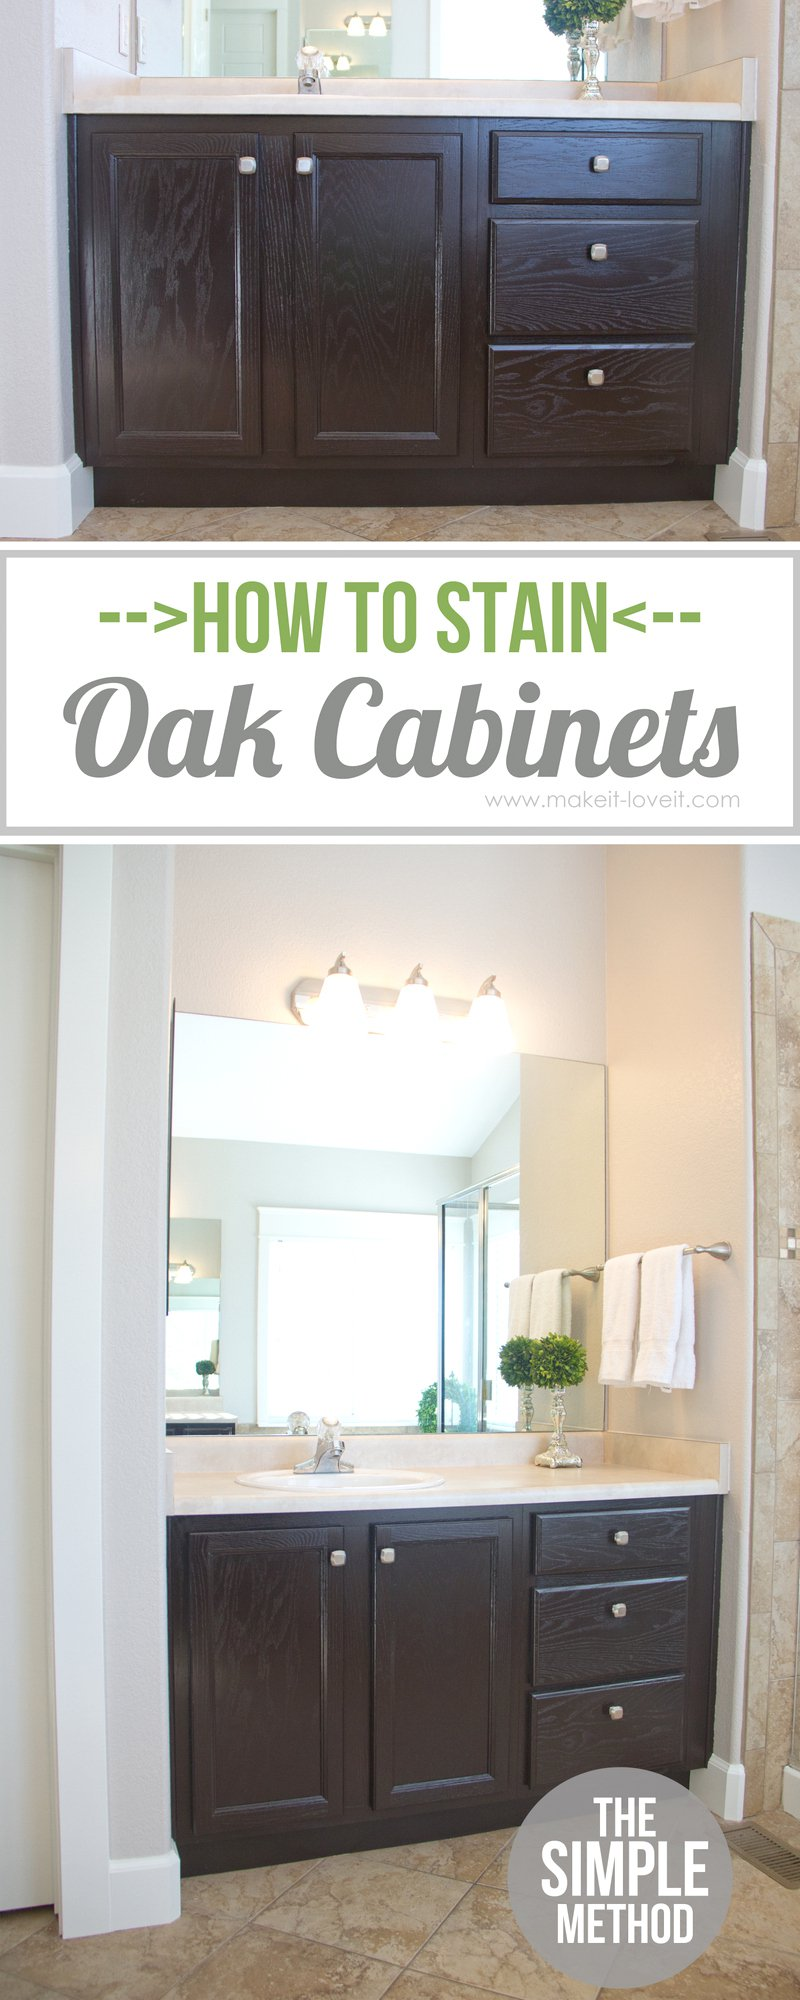 how-to-stain-oak-cabinets-1